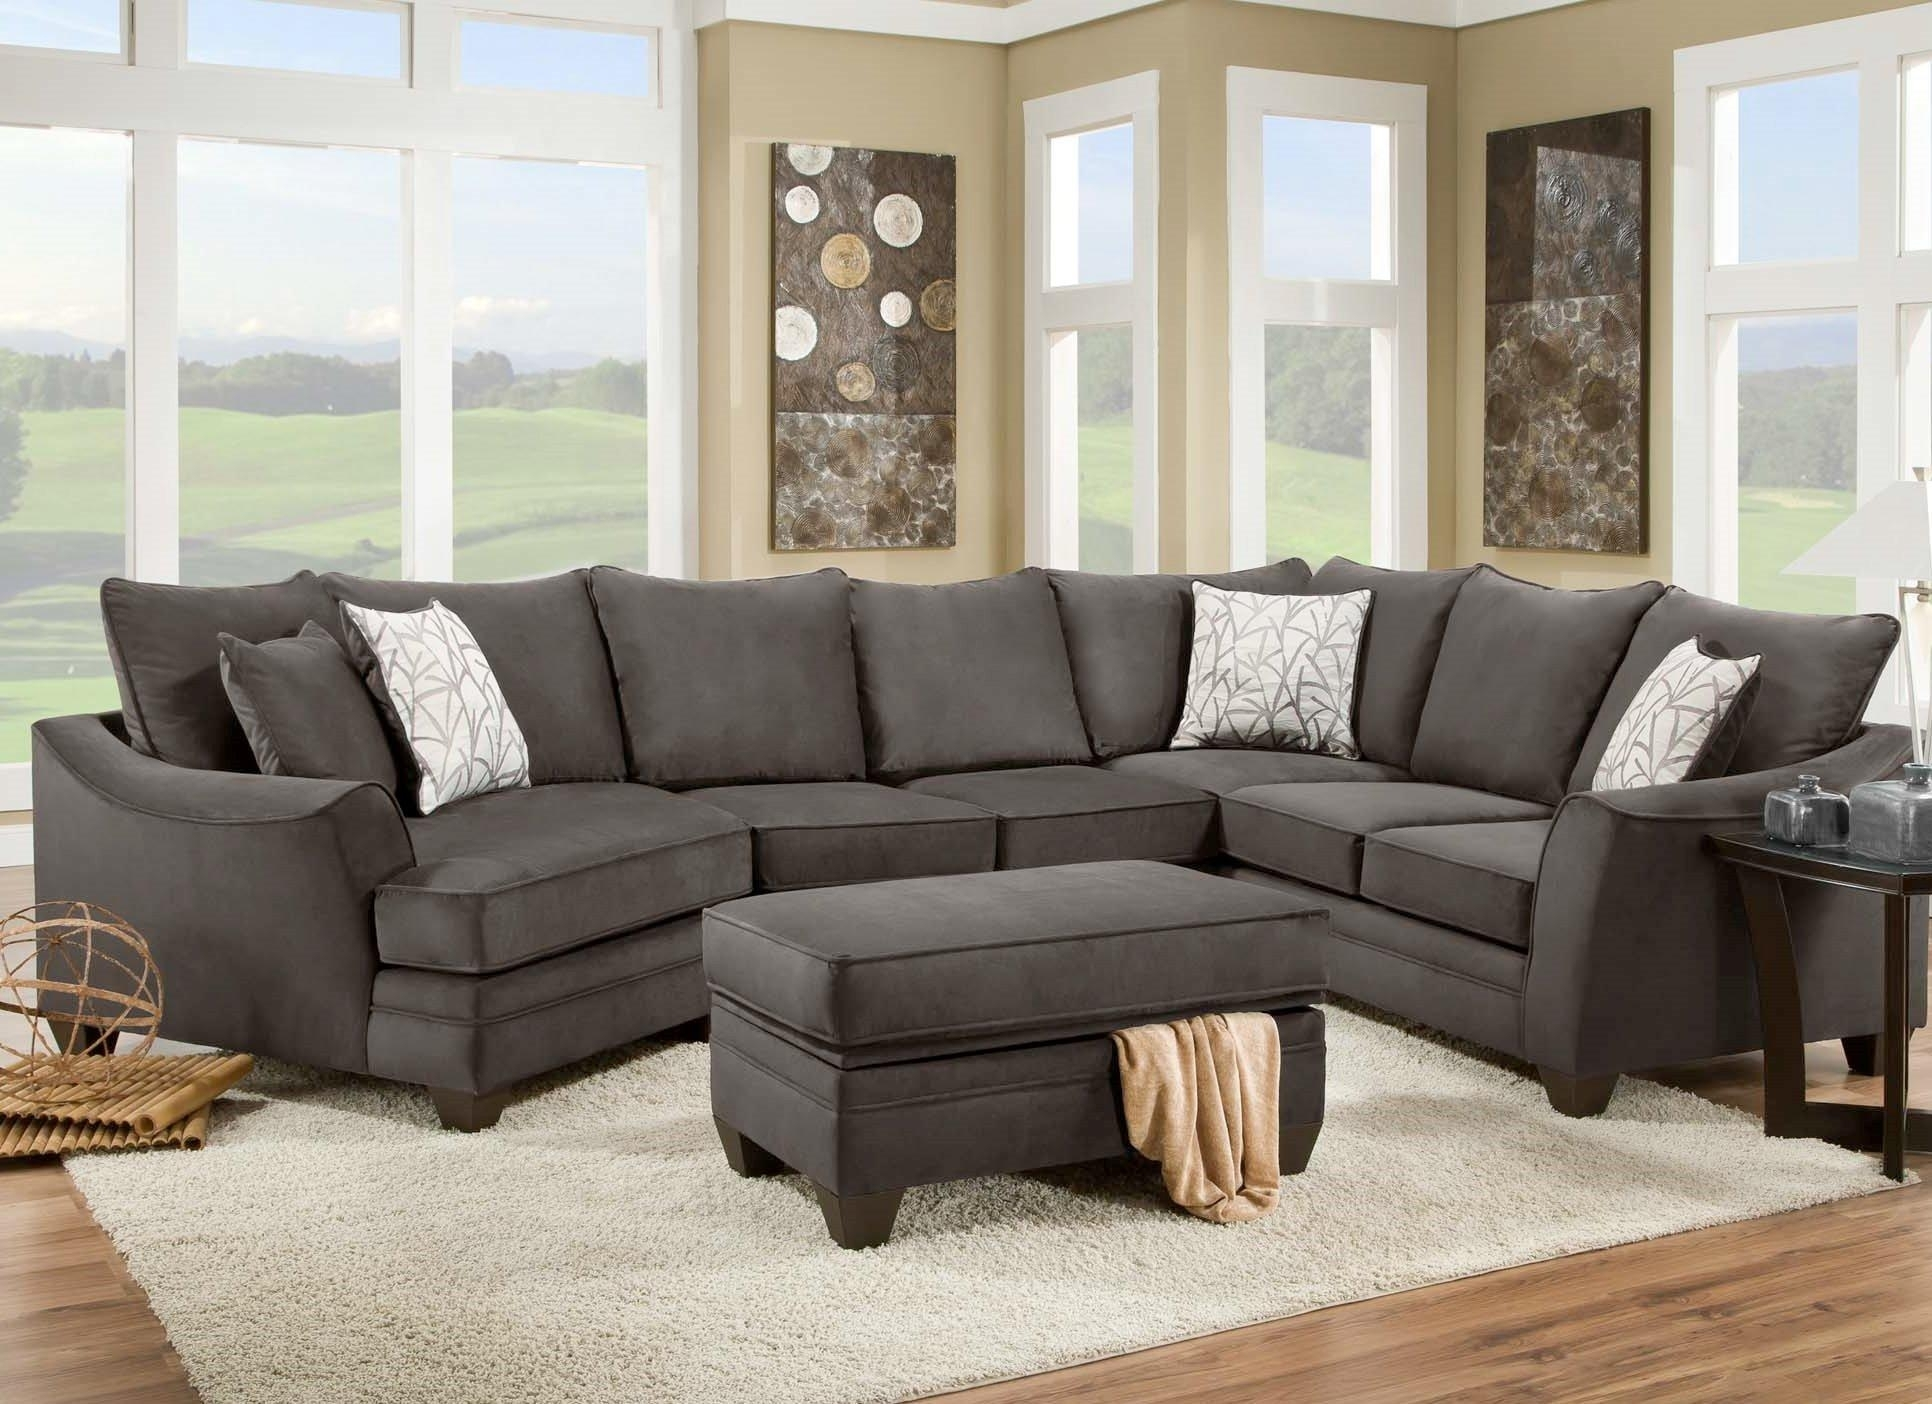 American Furniture 3810 Sectional Sofa That Seats 5 With Left Side Intended For Sectional Sofas In North Carolina (Image 1 of 10)